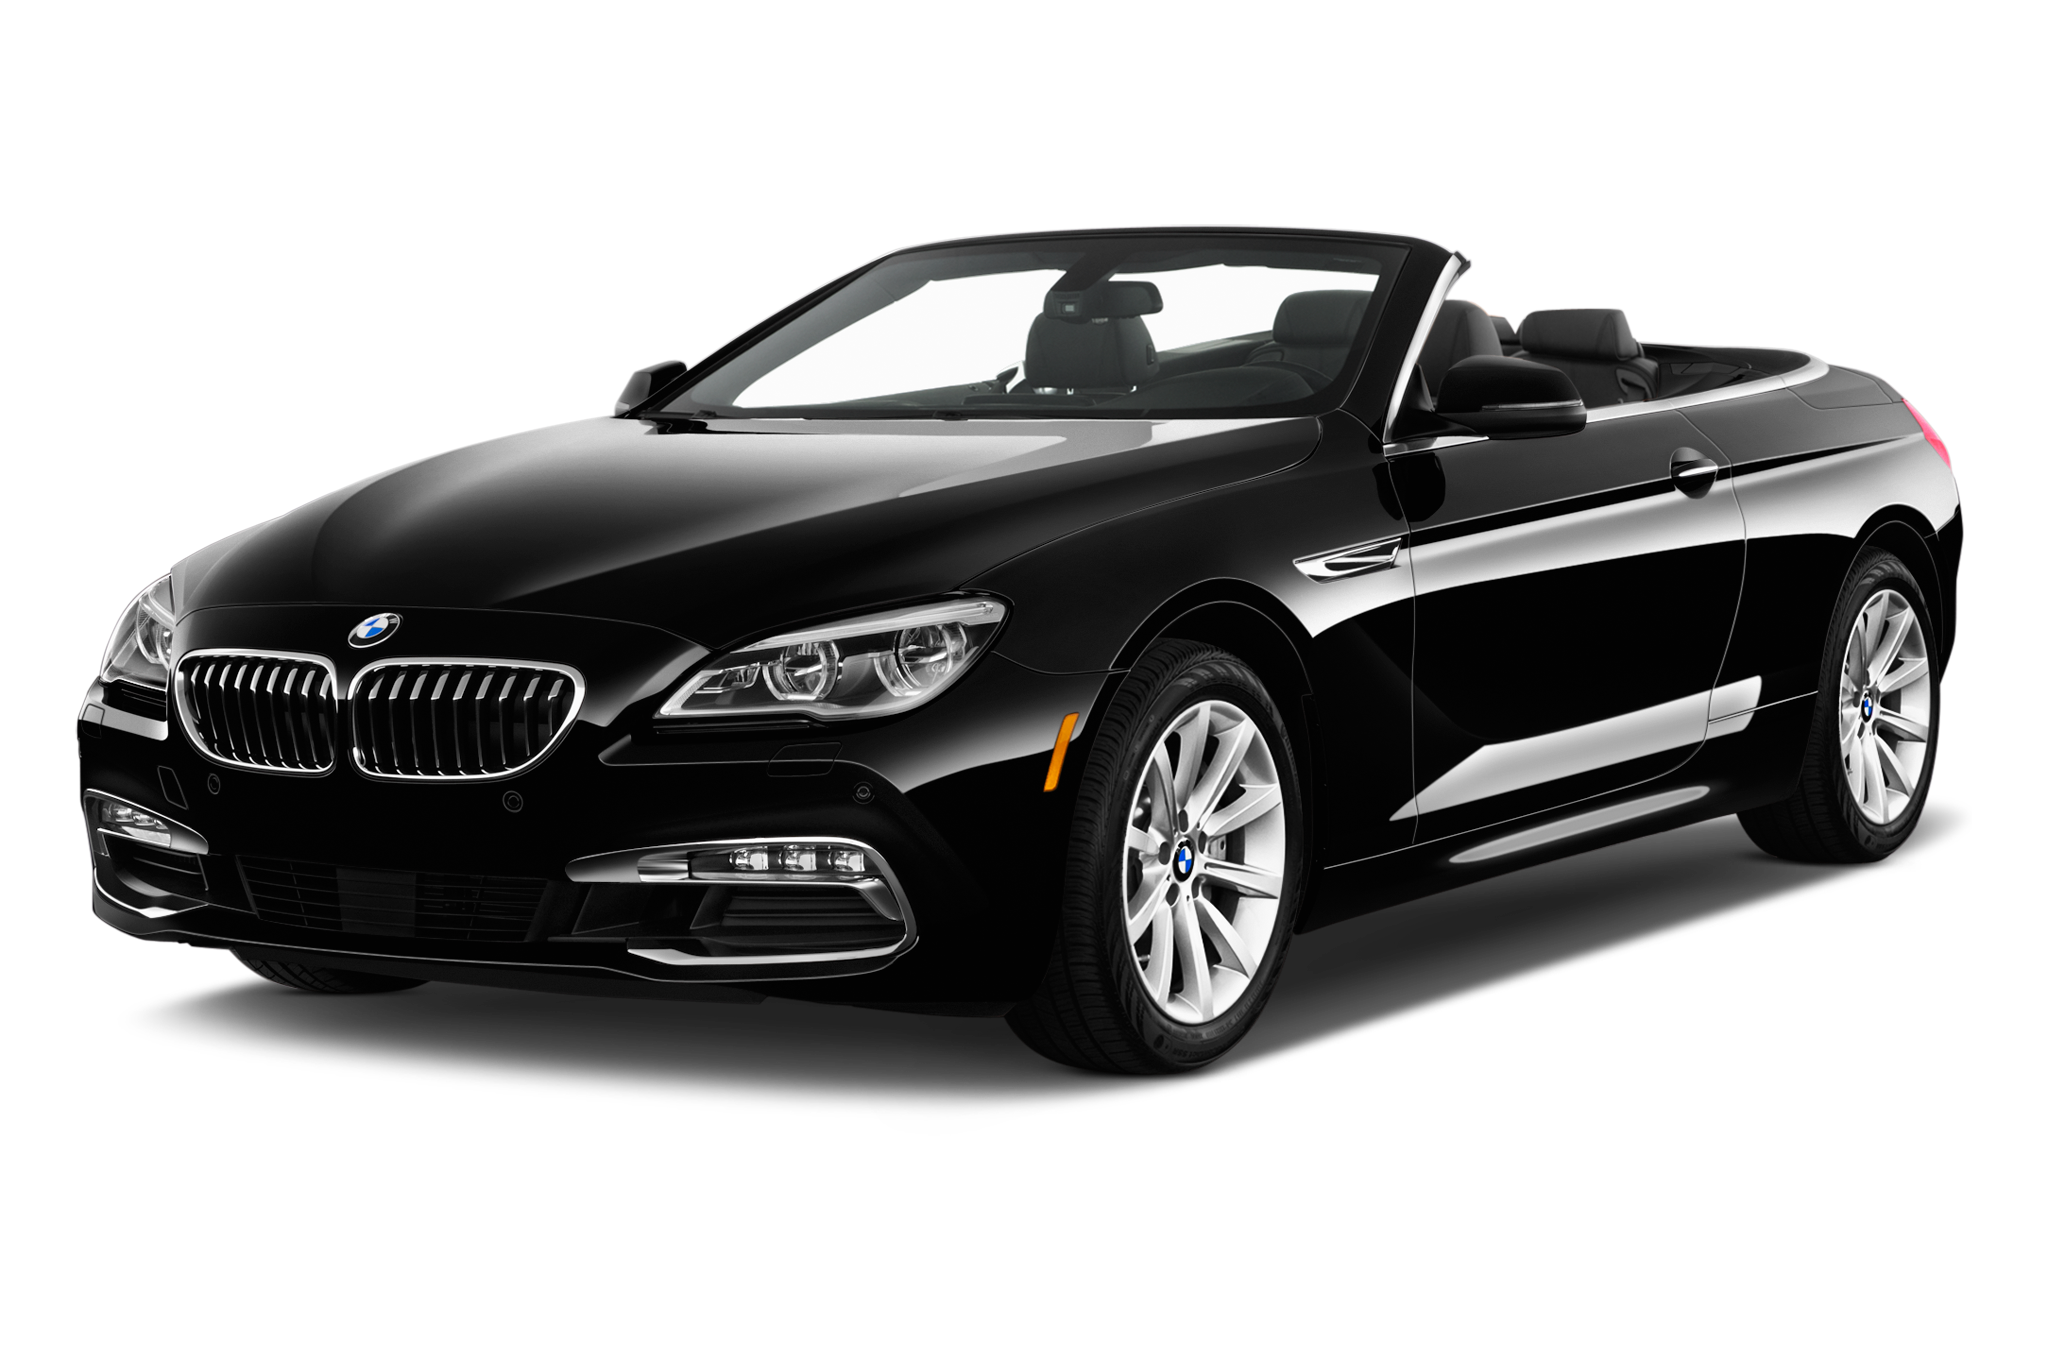 Bmw 6 series png. Reviews and rating